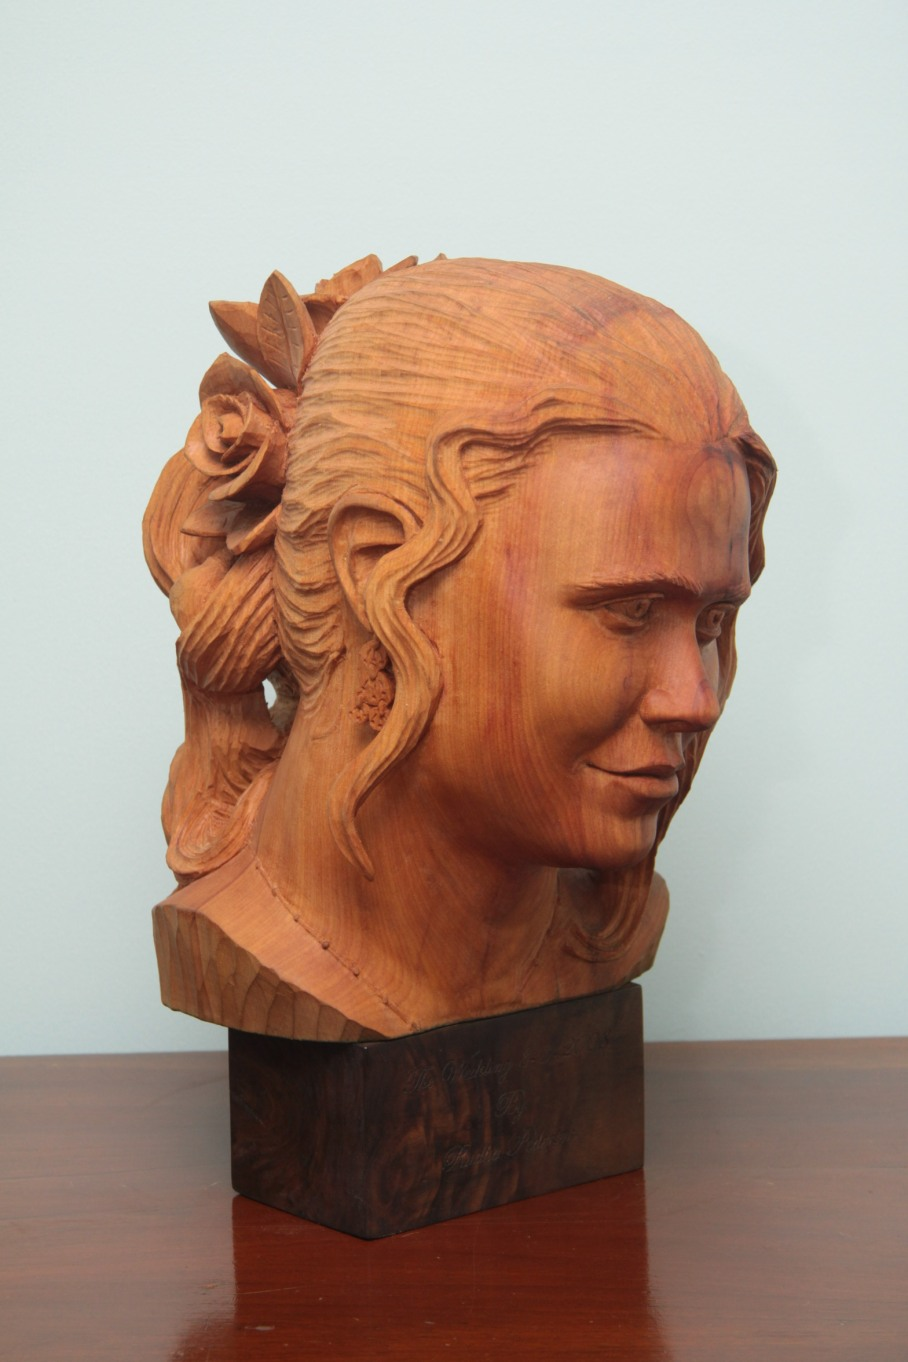 Wood Carving Patterns Beginners Wooden Plans wood shelving designs